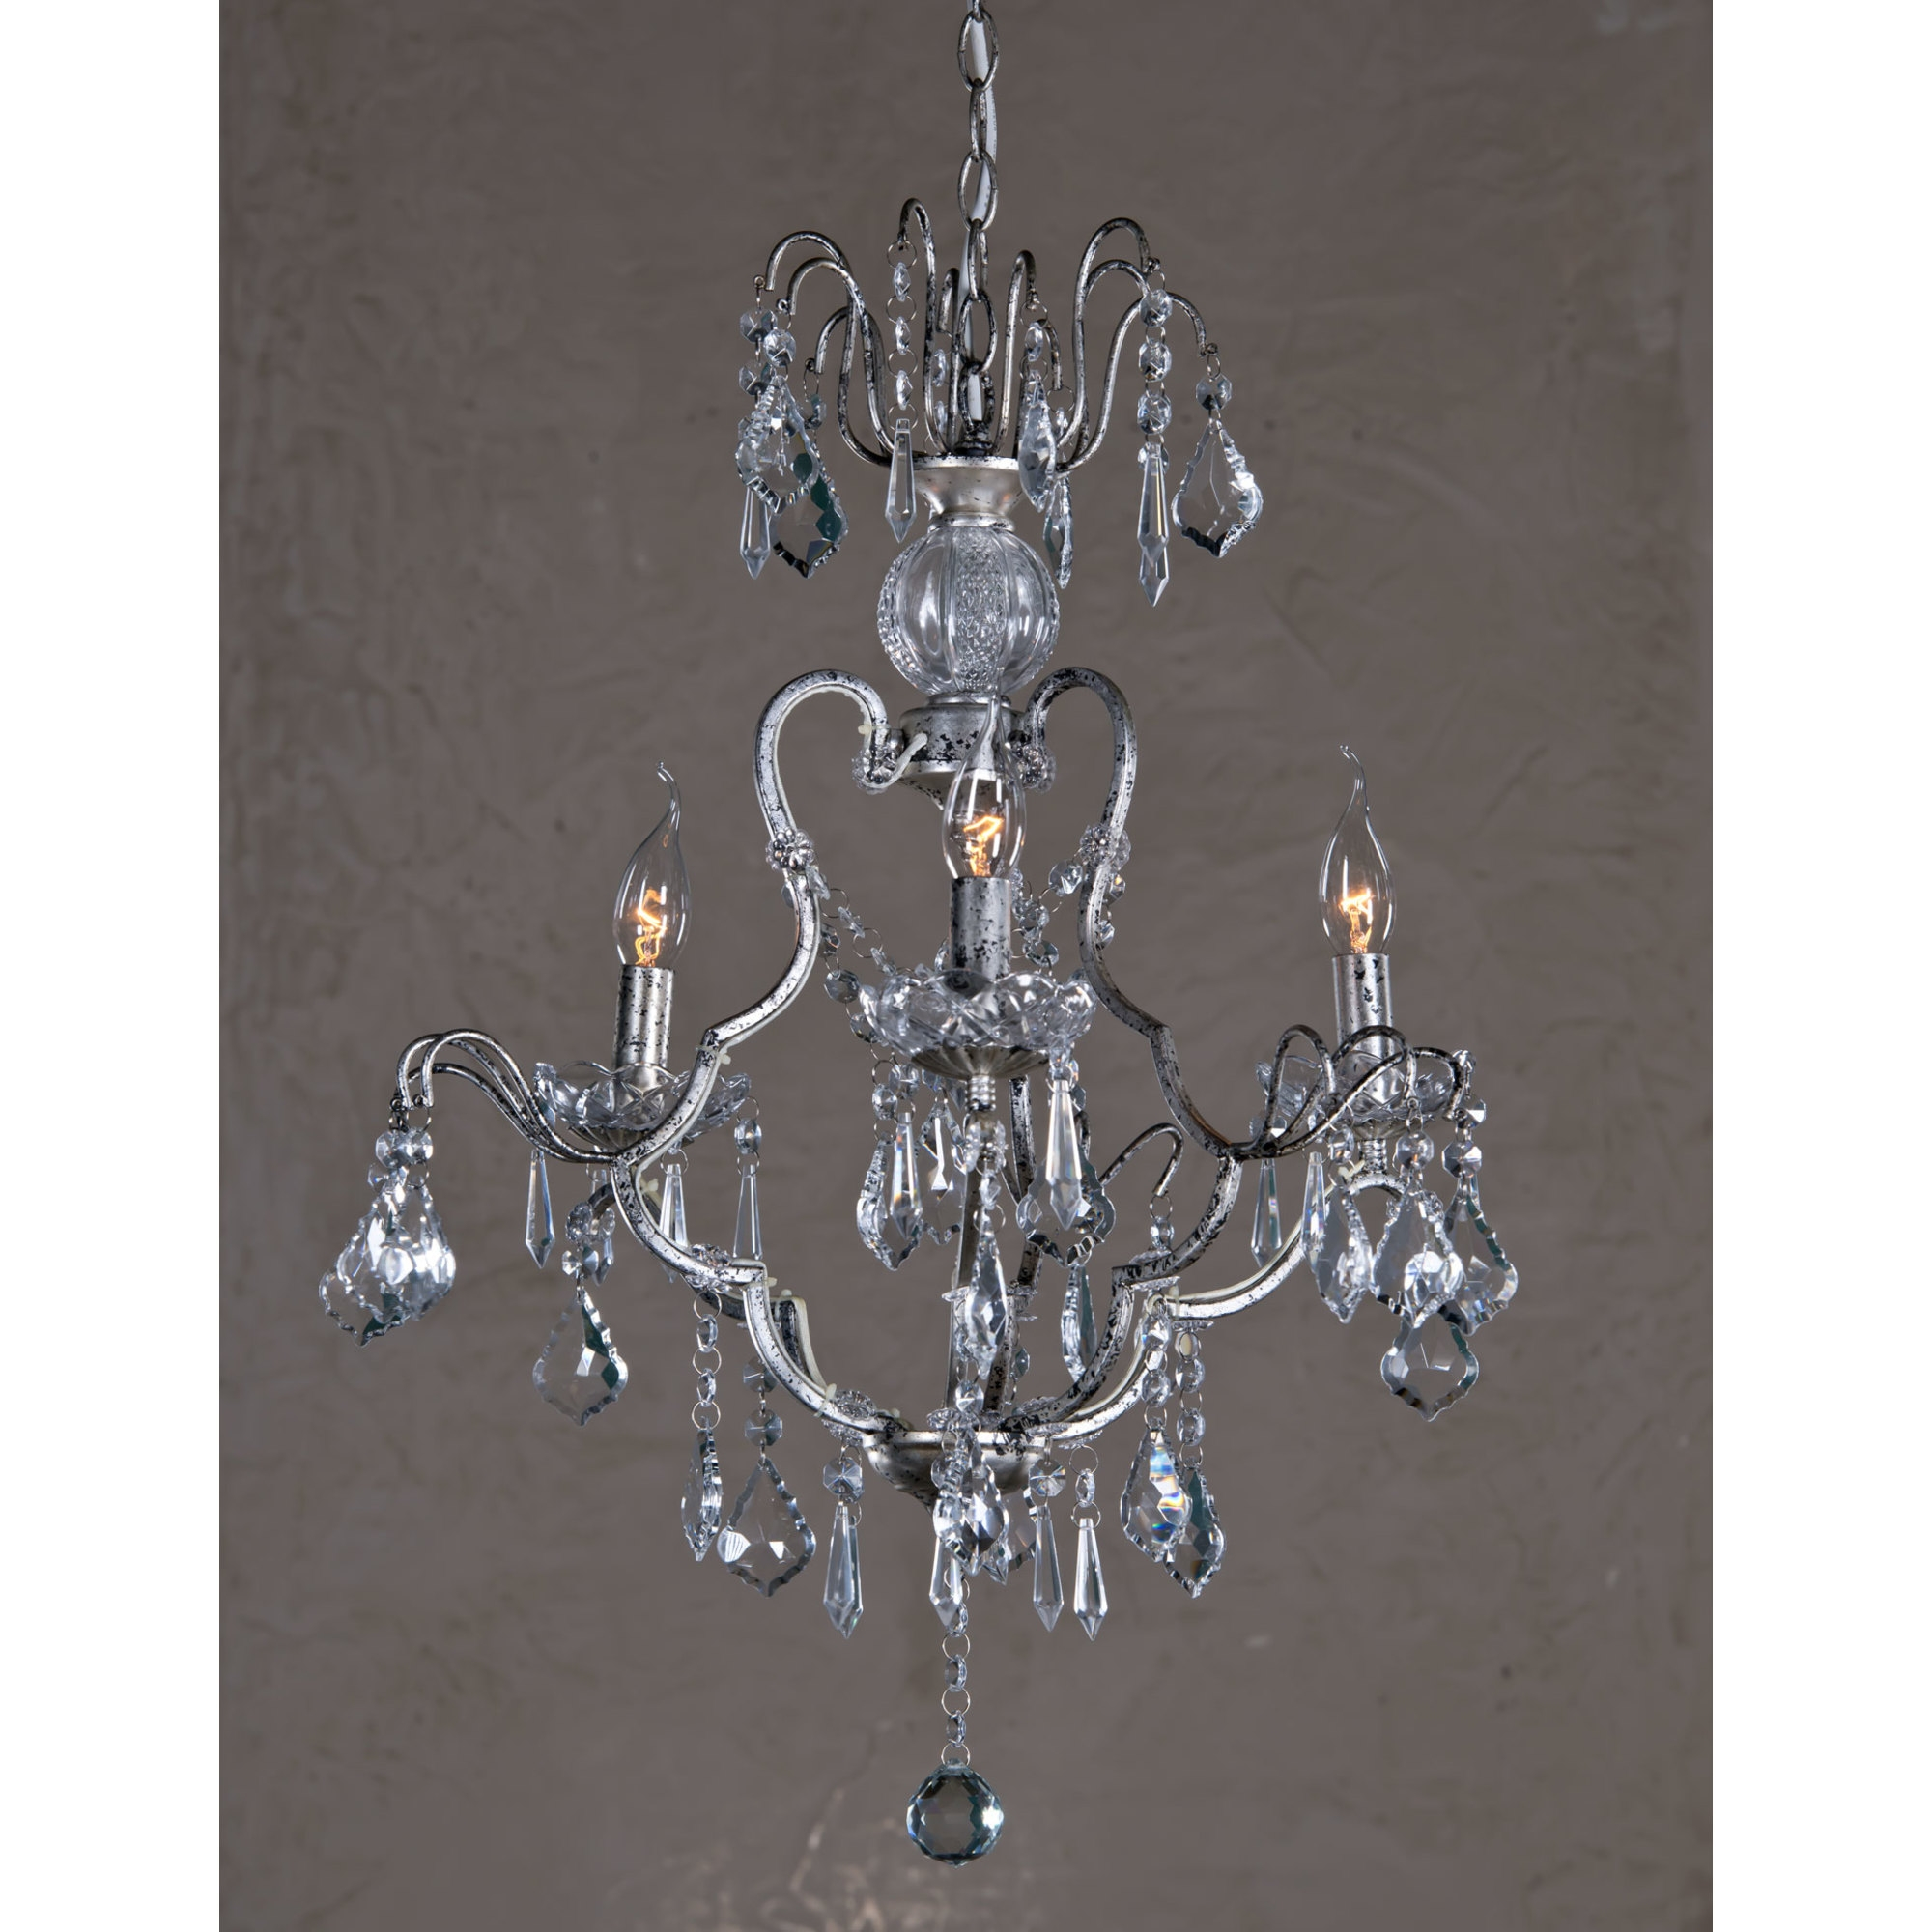 Vintage 3 Light Chandelier - Antique Silver and Clear